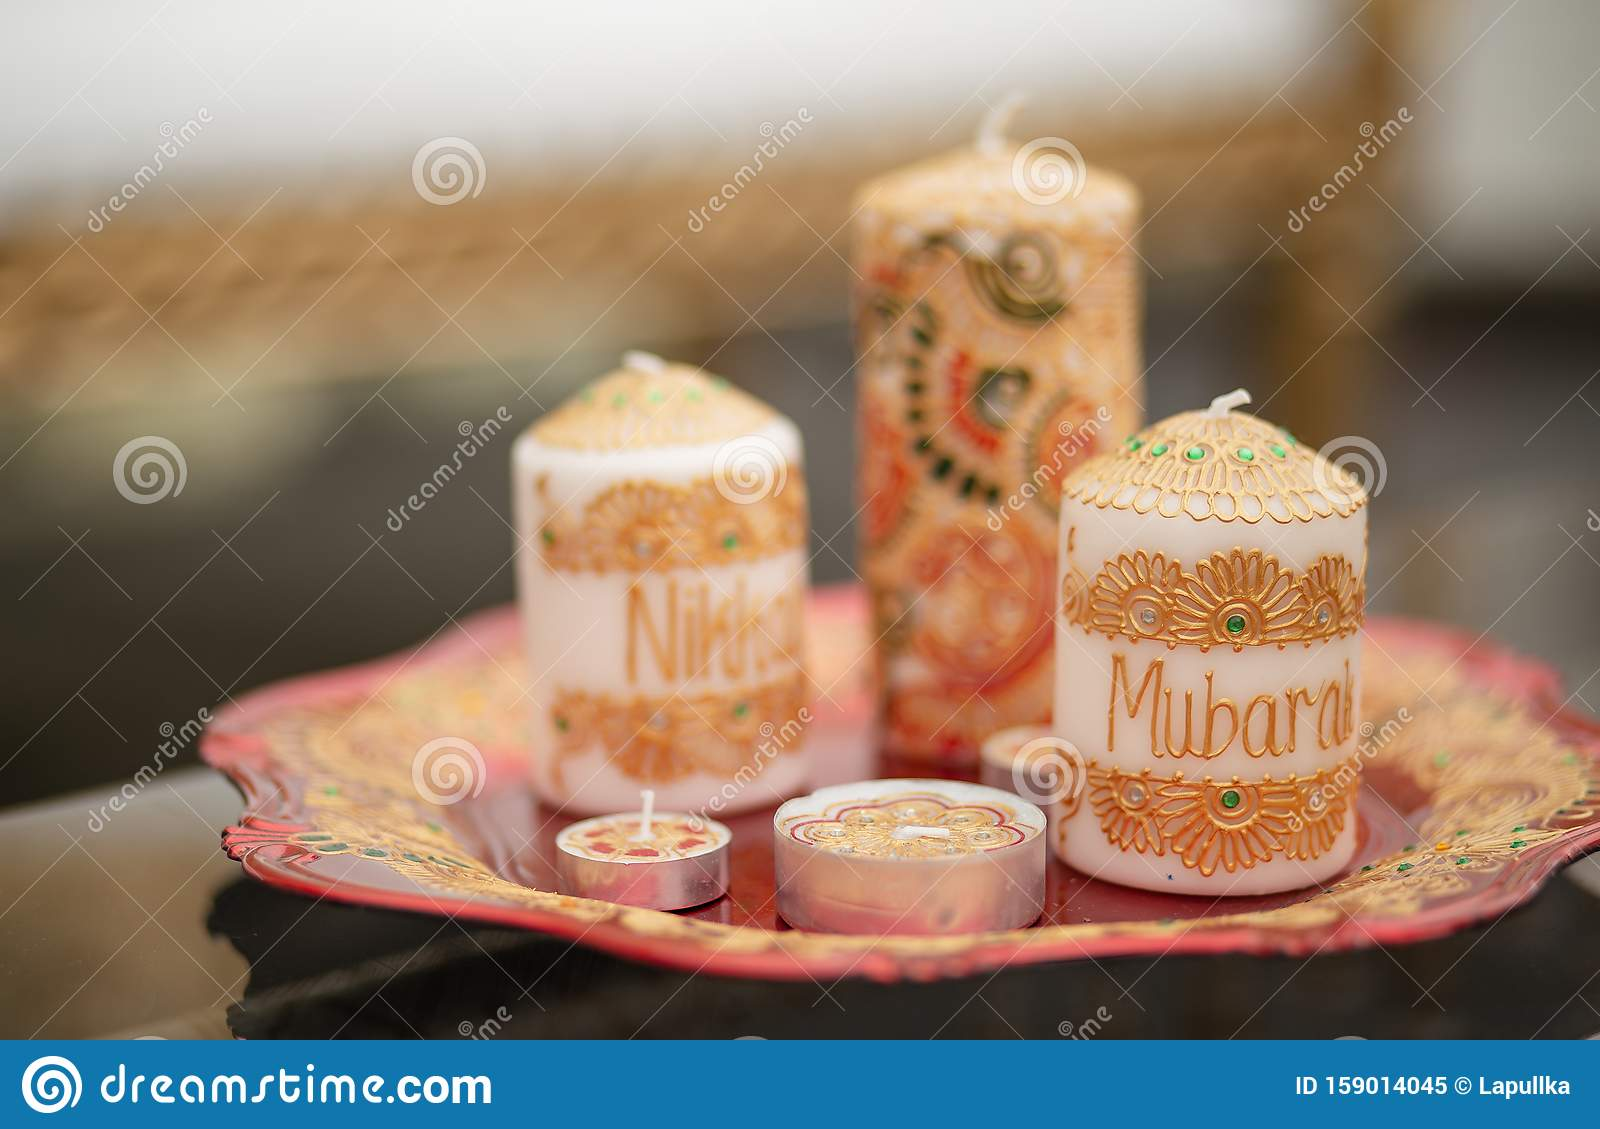 20 Nikah Photos   Free & Royalty Free Stock Photos from Dreamstime